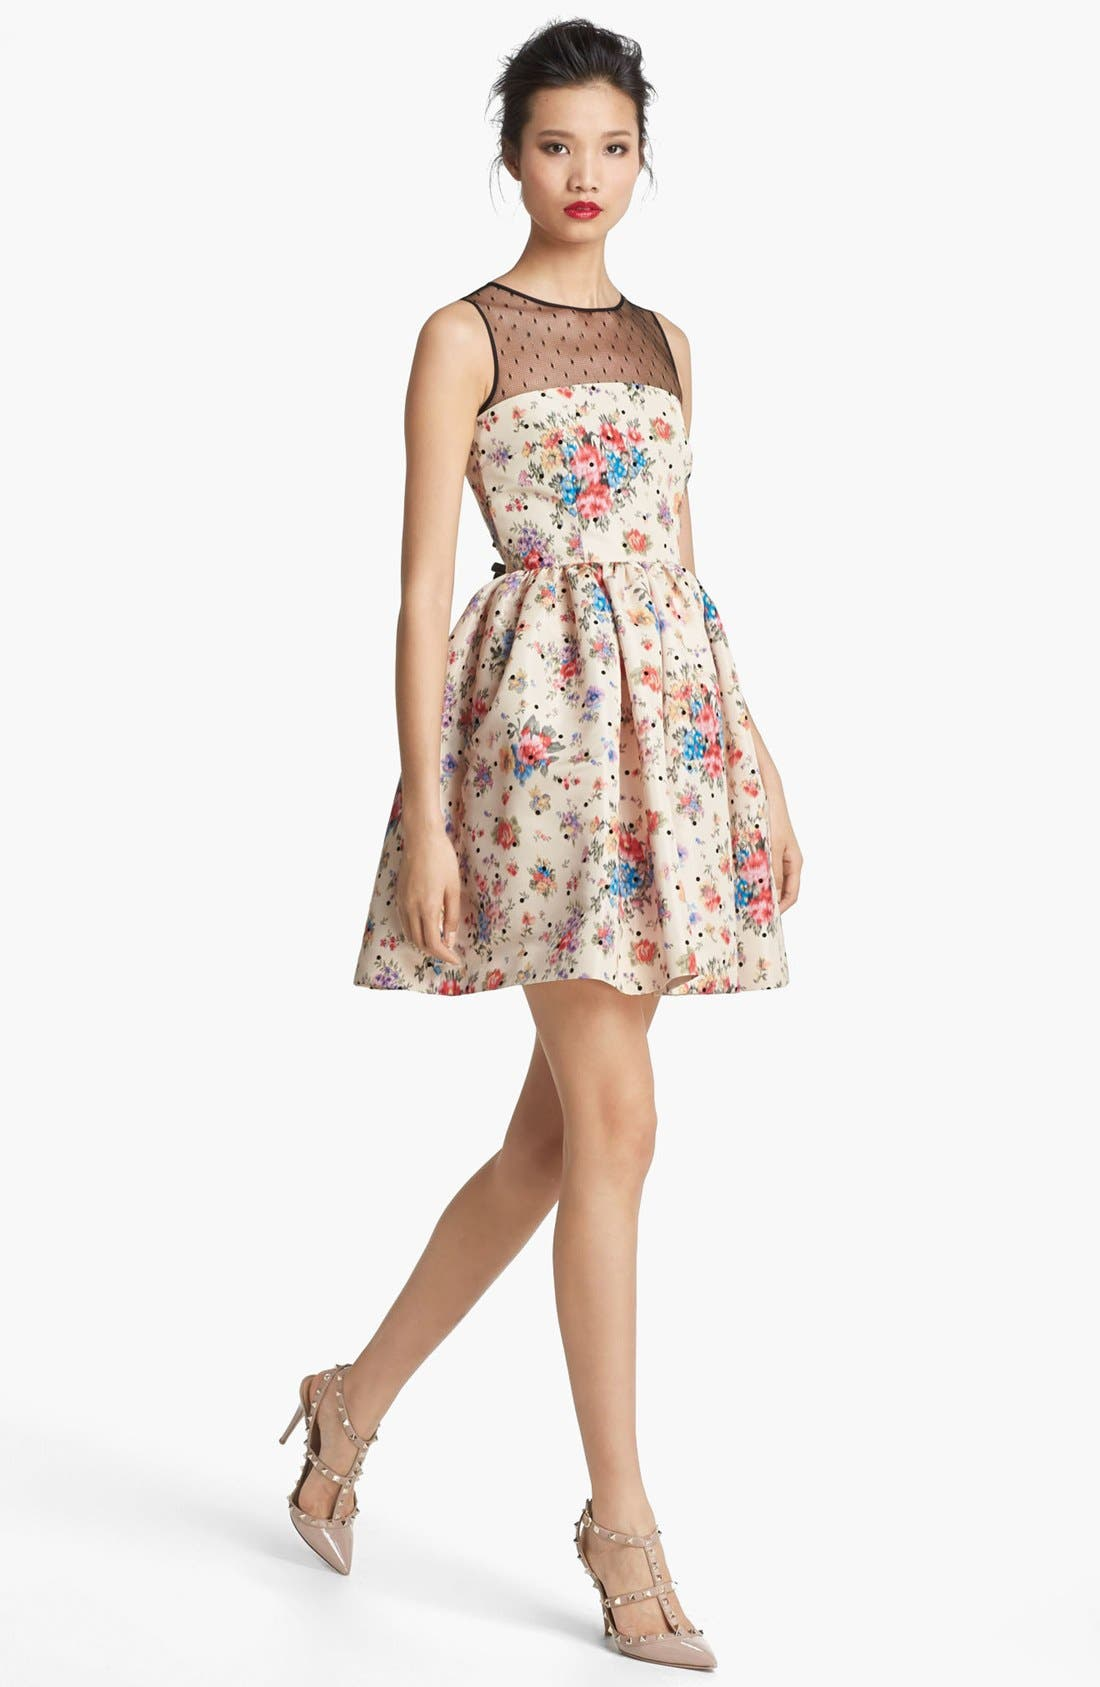 Alternate Image 1 Selected - RED Valentino Dress & Accessories